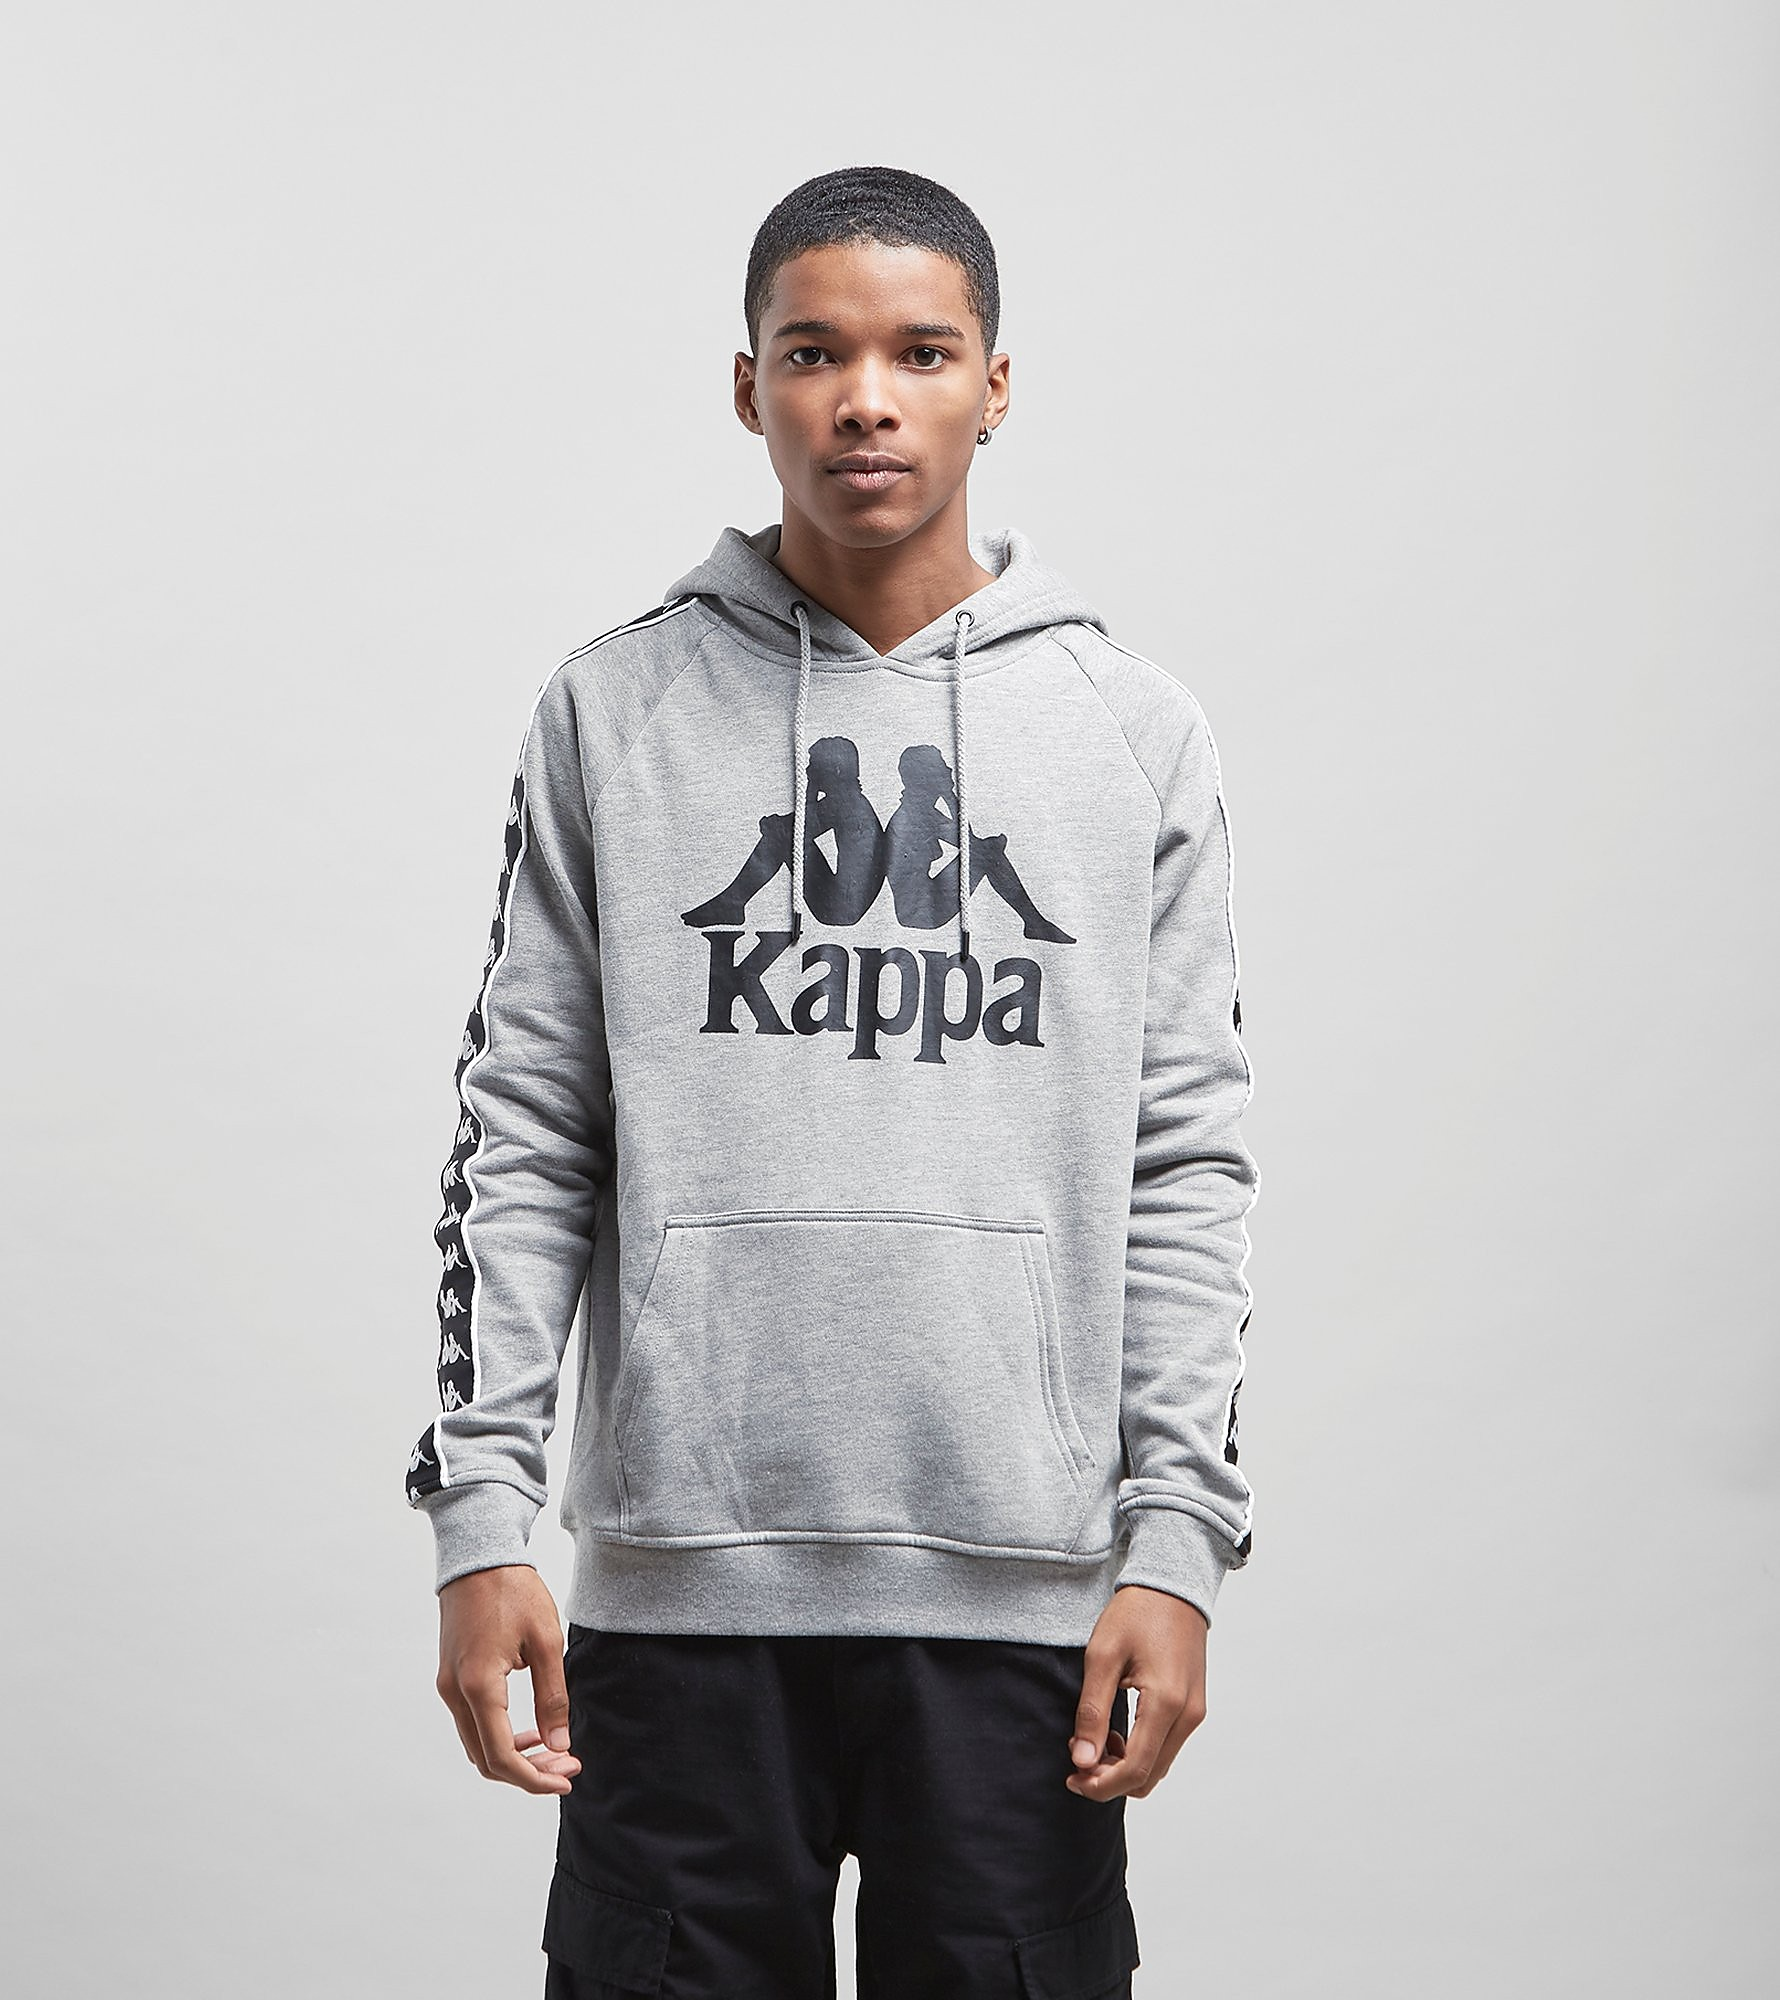 Kappa Authentic Hurtado Tape Hoodie